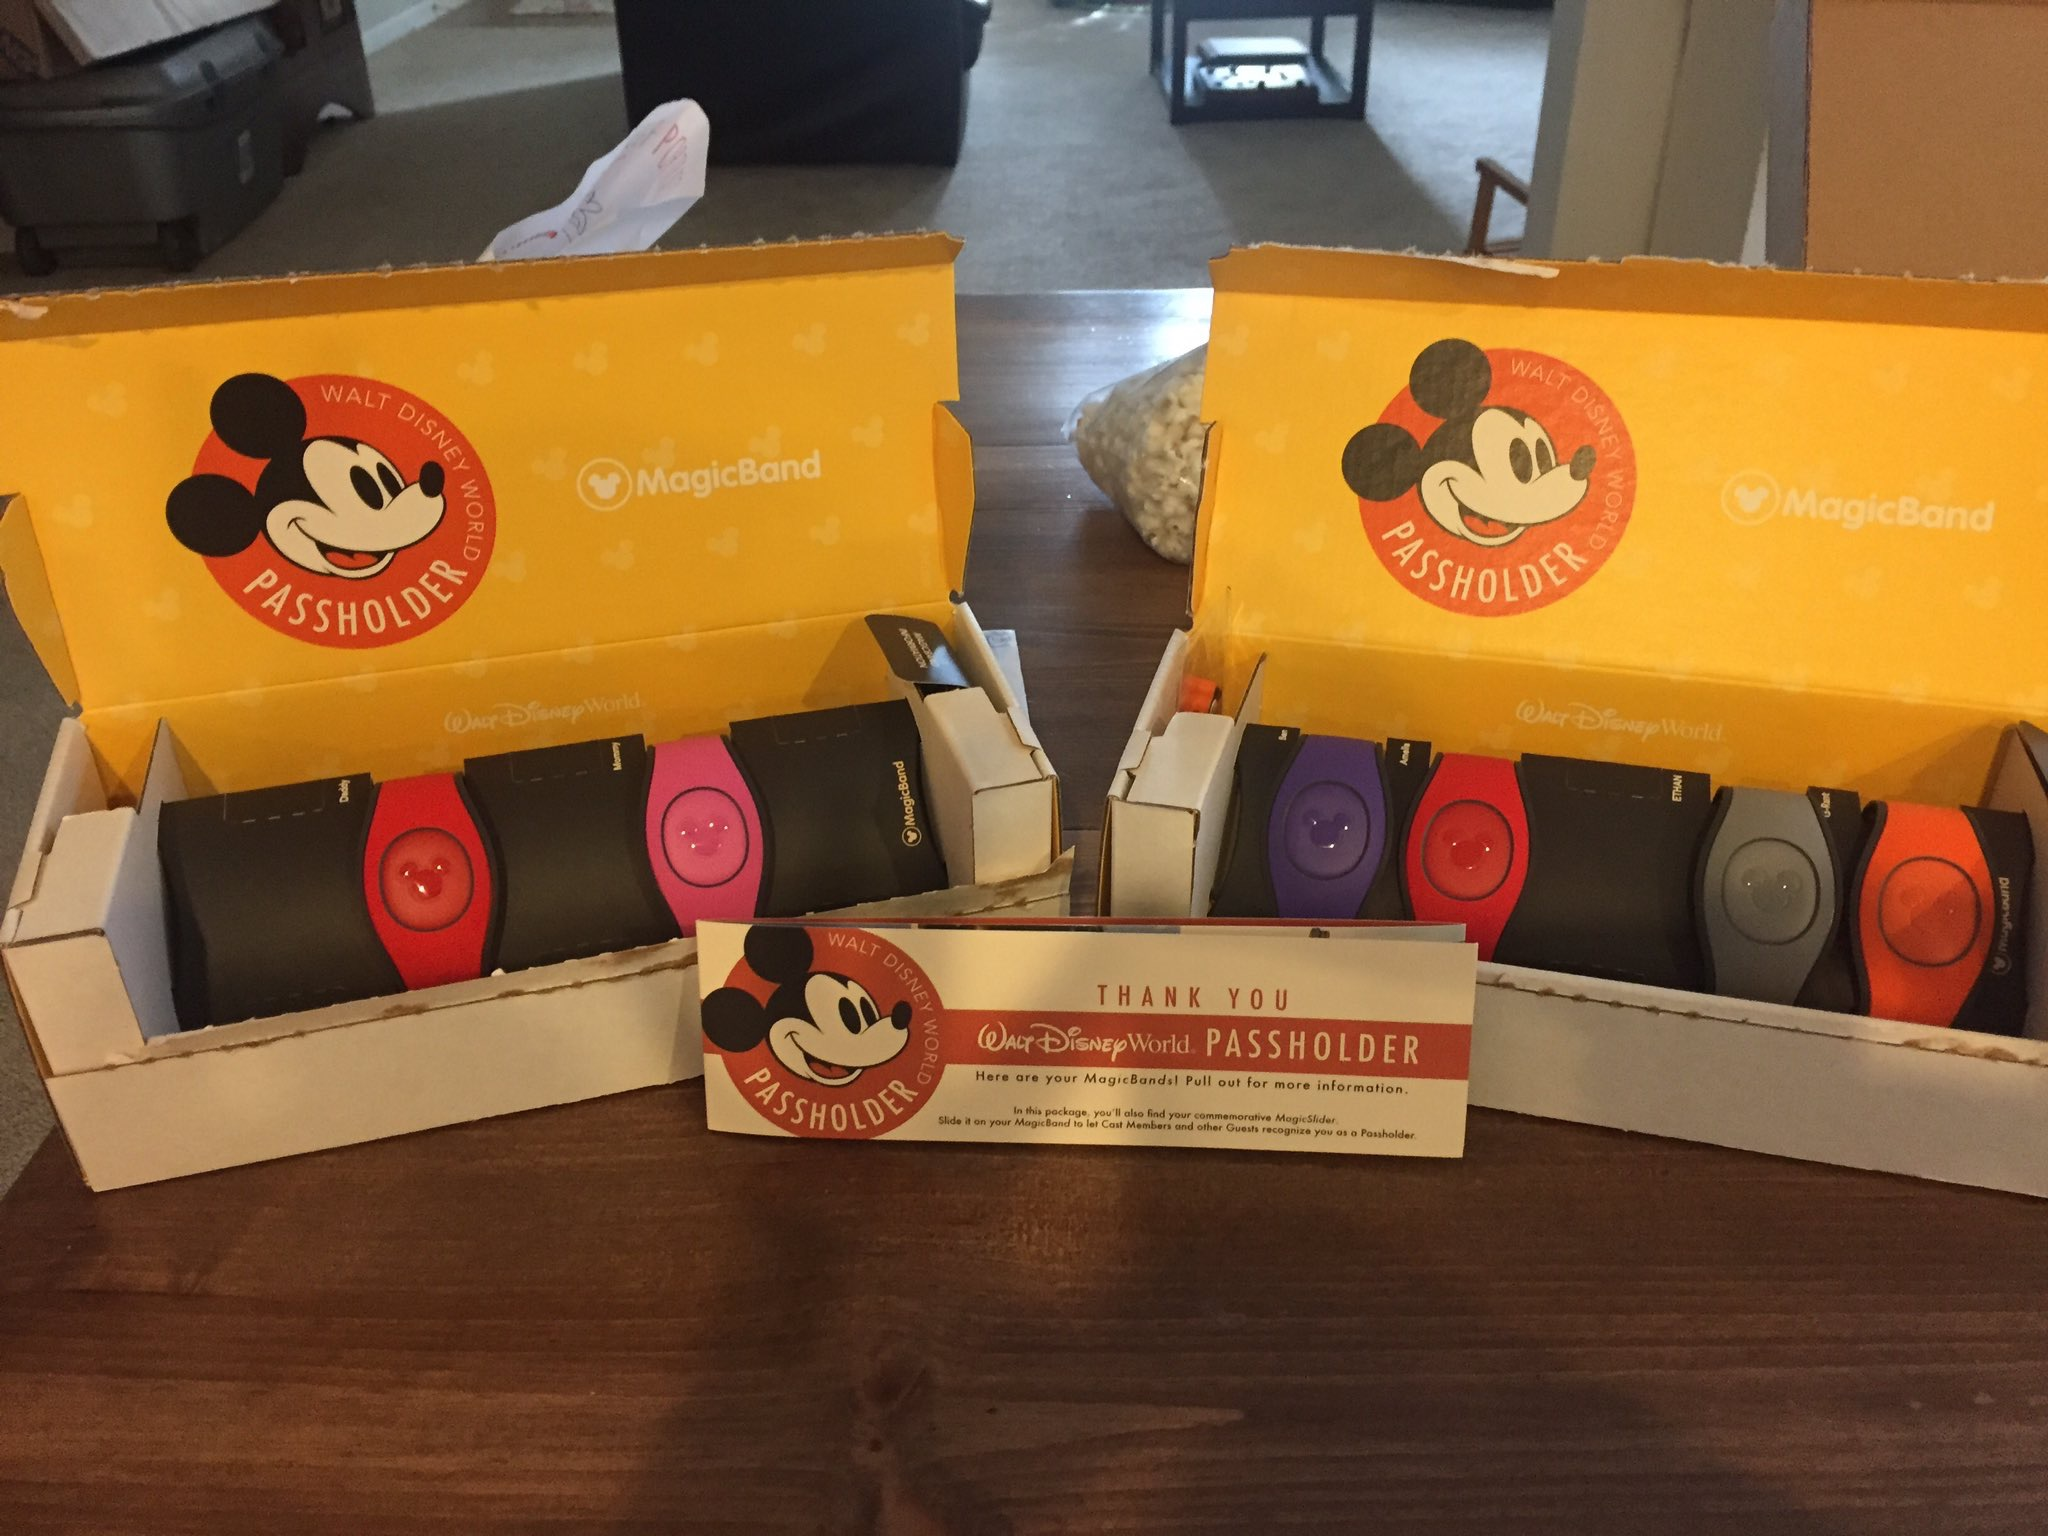 ... (Elastigirl) on it was released to the public very briefly with the original MagicBand (and maybe even briefer for MagicBand 2). This box is actually ...